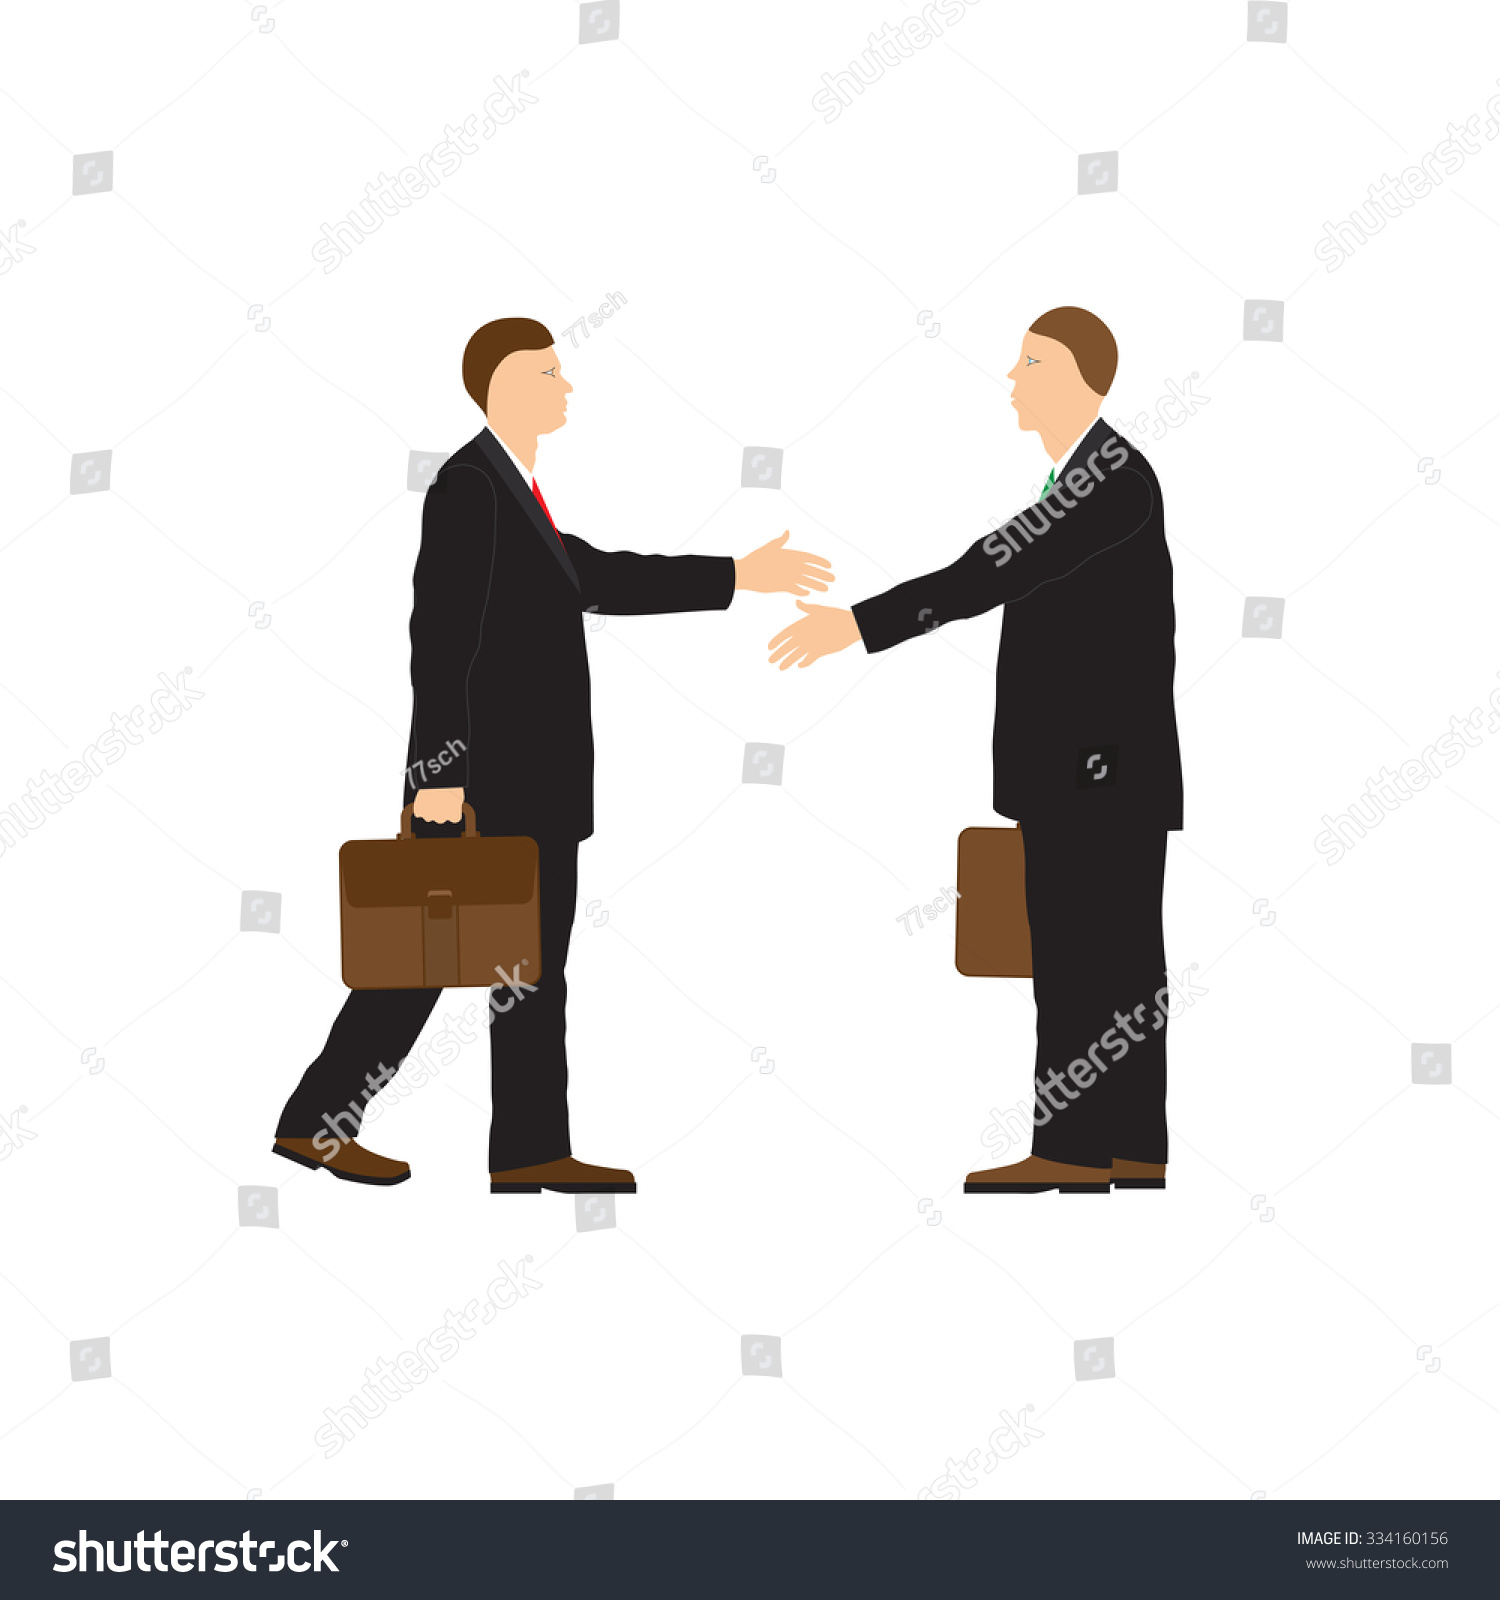 Business people handshake greeting deal at work photo free download - Two Businessmen Handshake Greeting Congratulation Conclusion Of The Contract